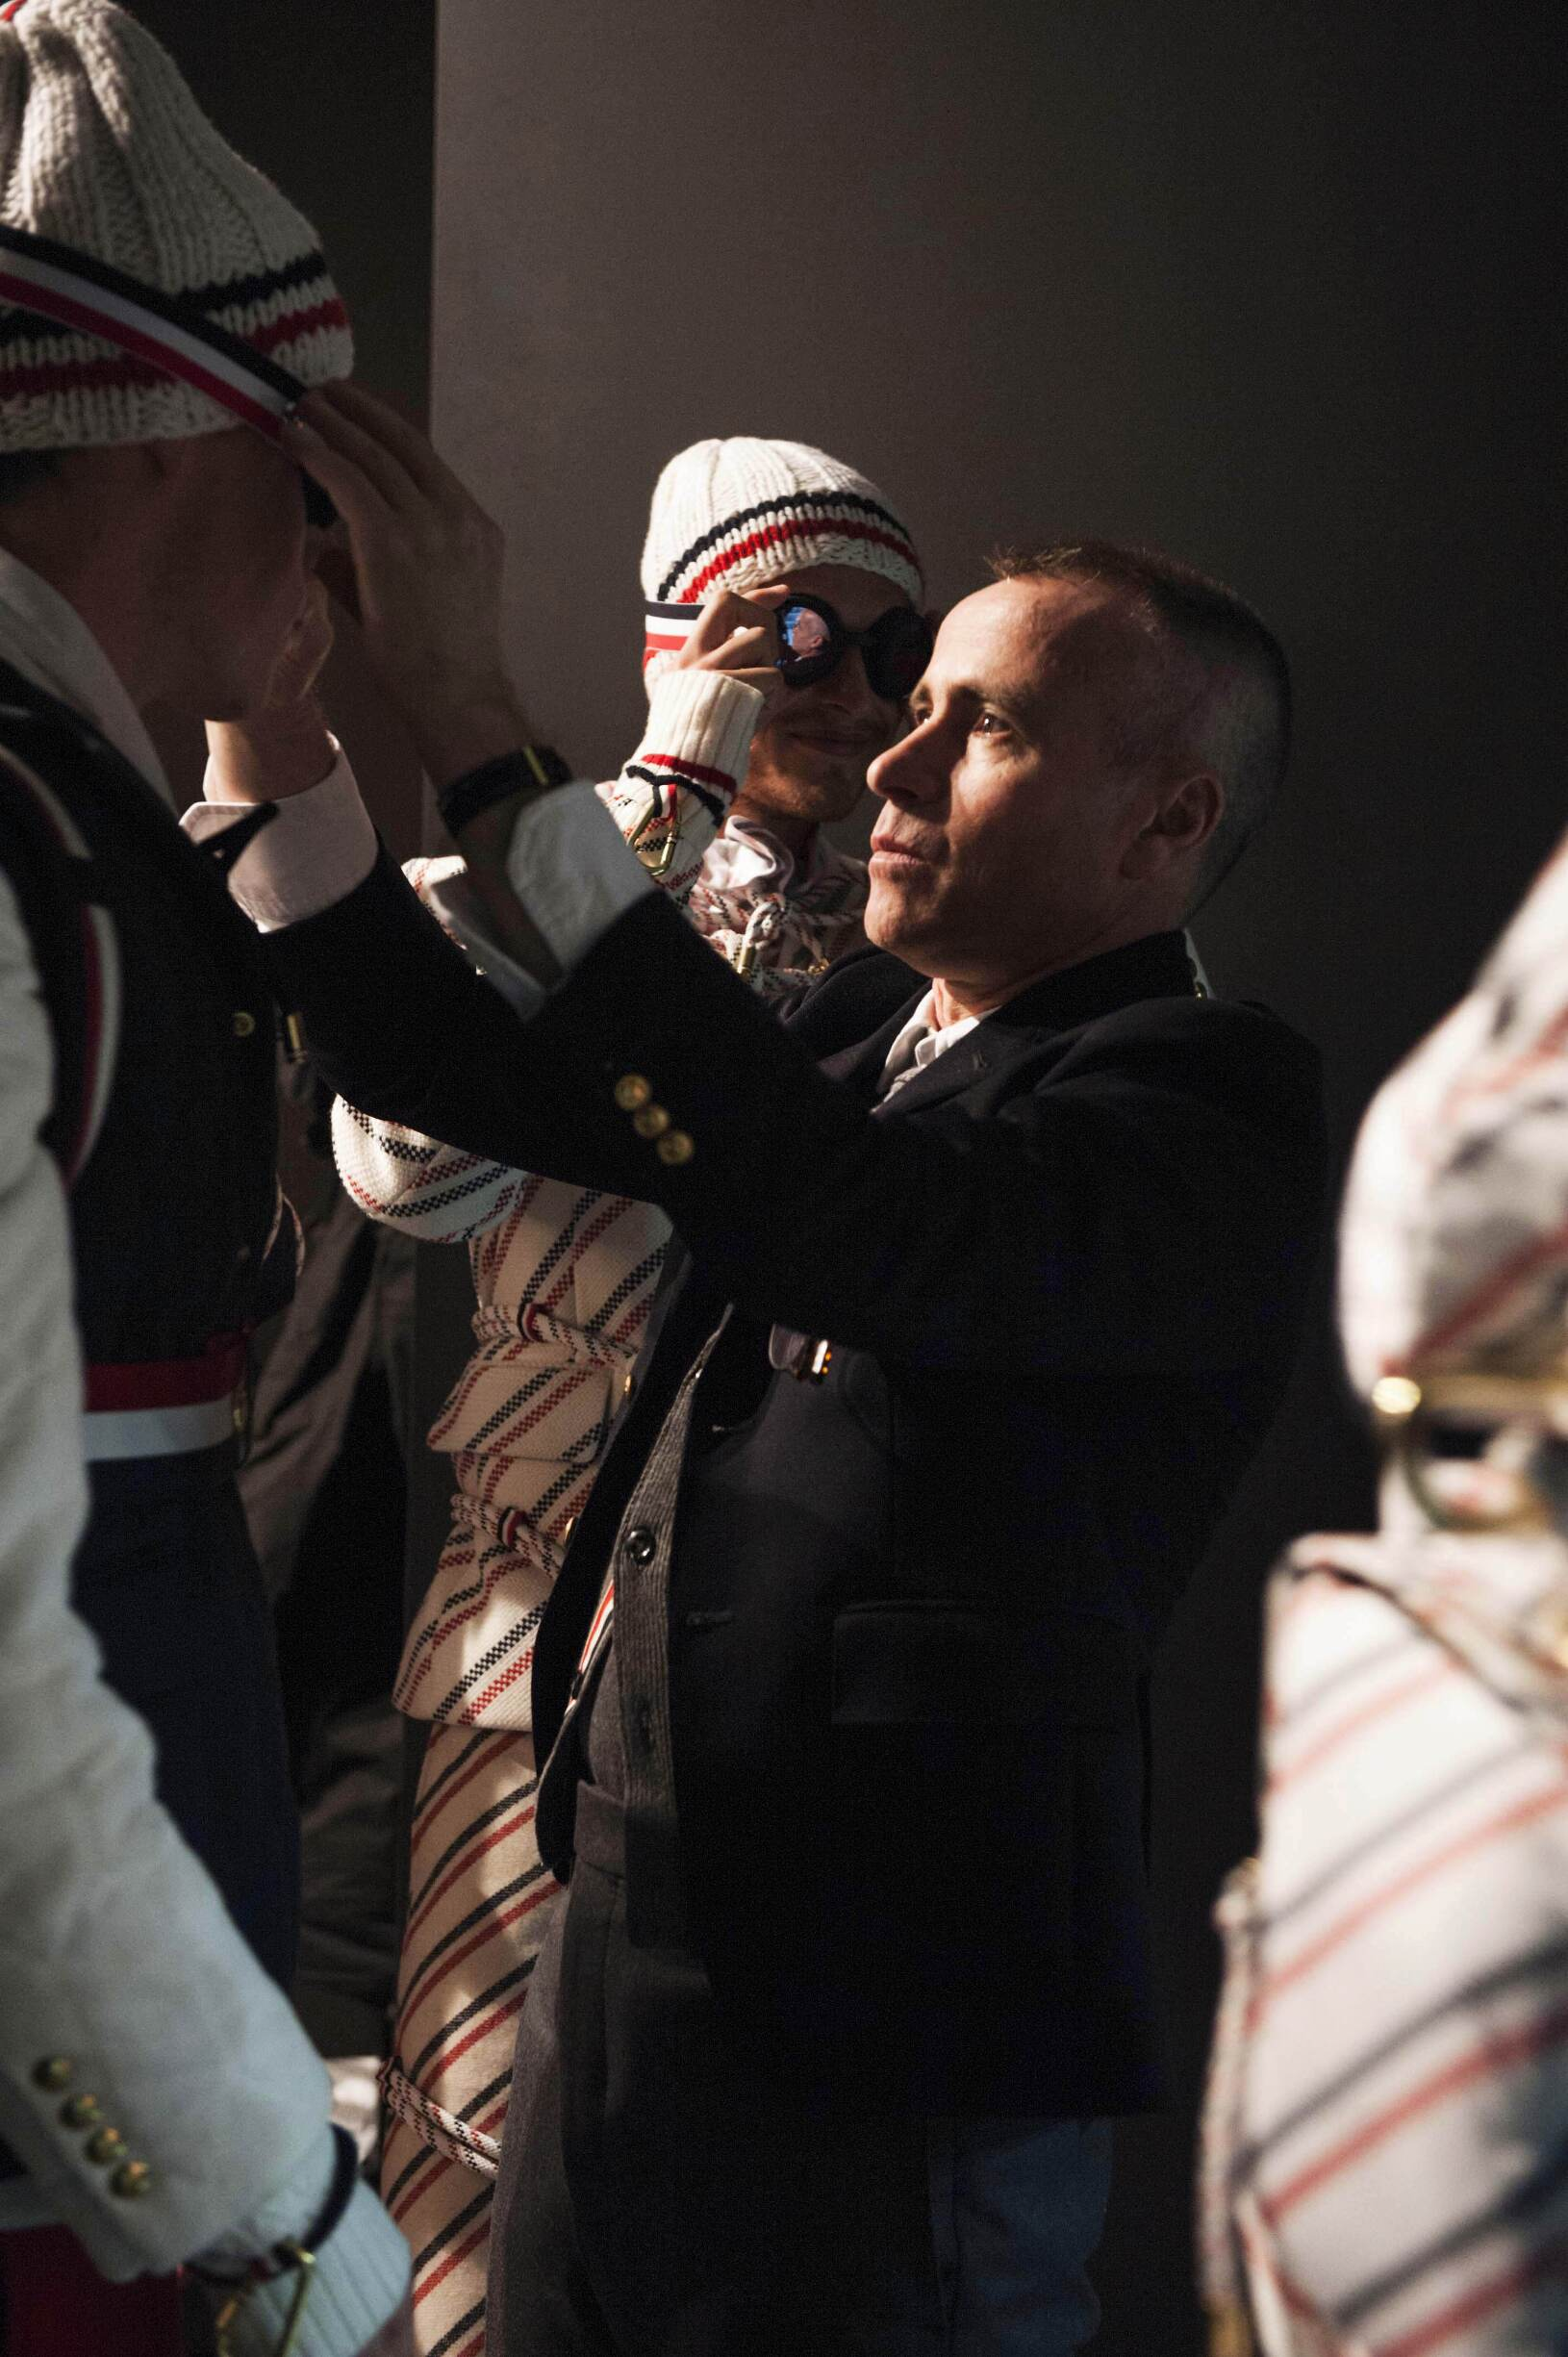 Backstage Moncler Gamme Bleu FW 2017 18 Models and Thom Browne